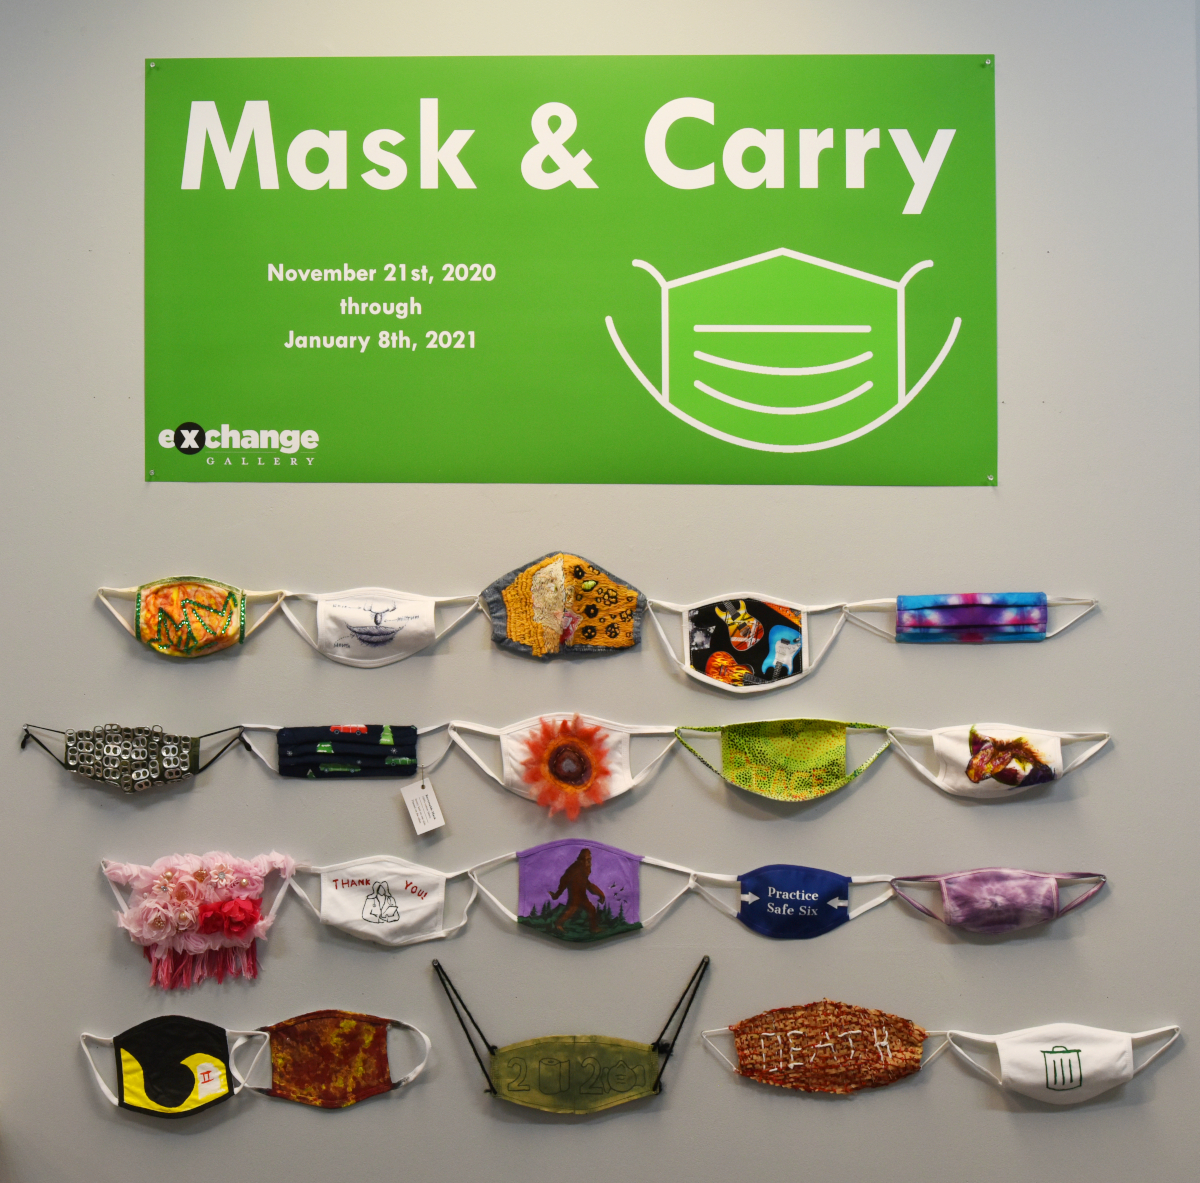 Mask & Carry